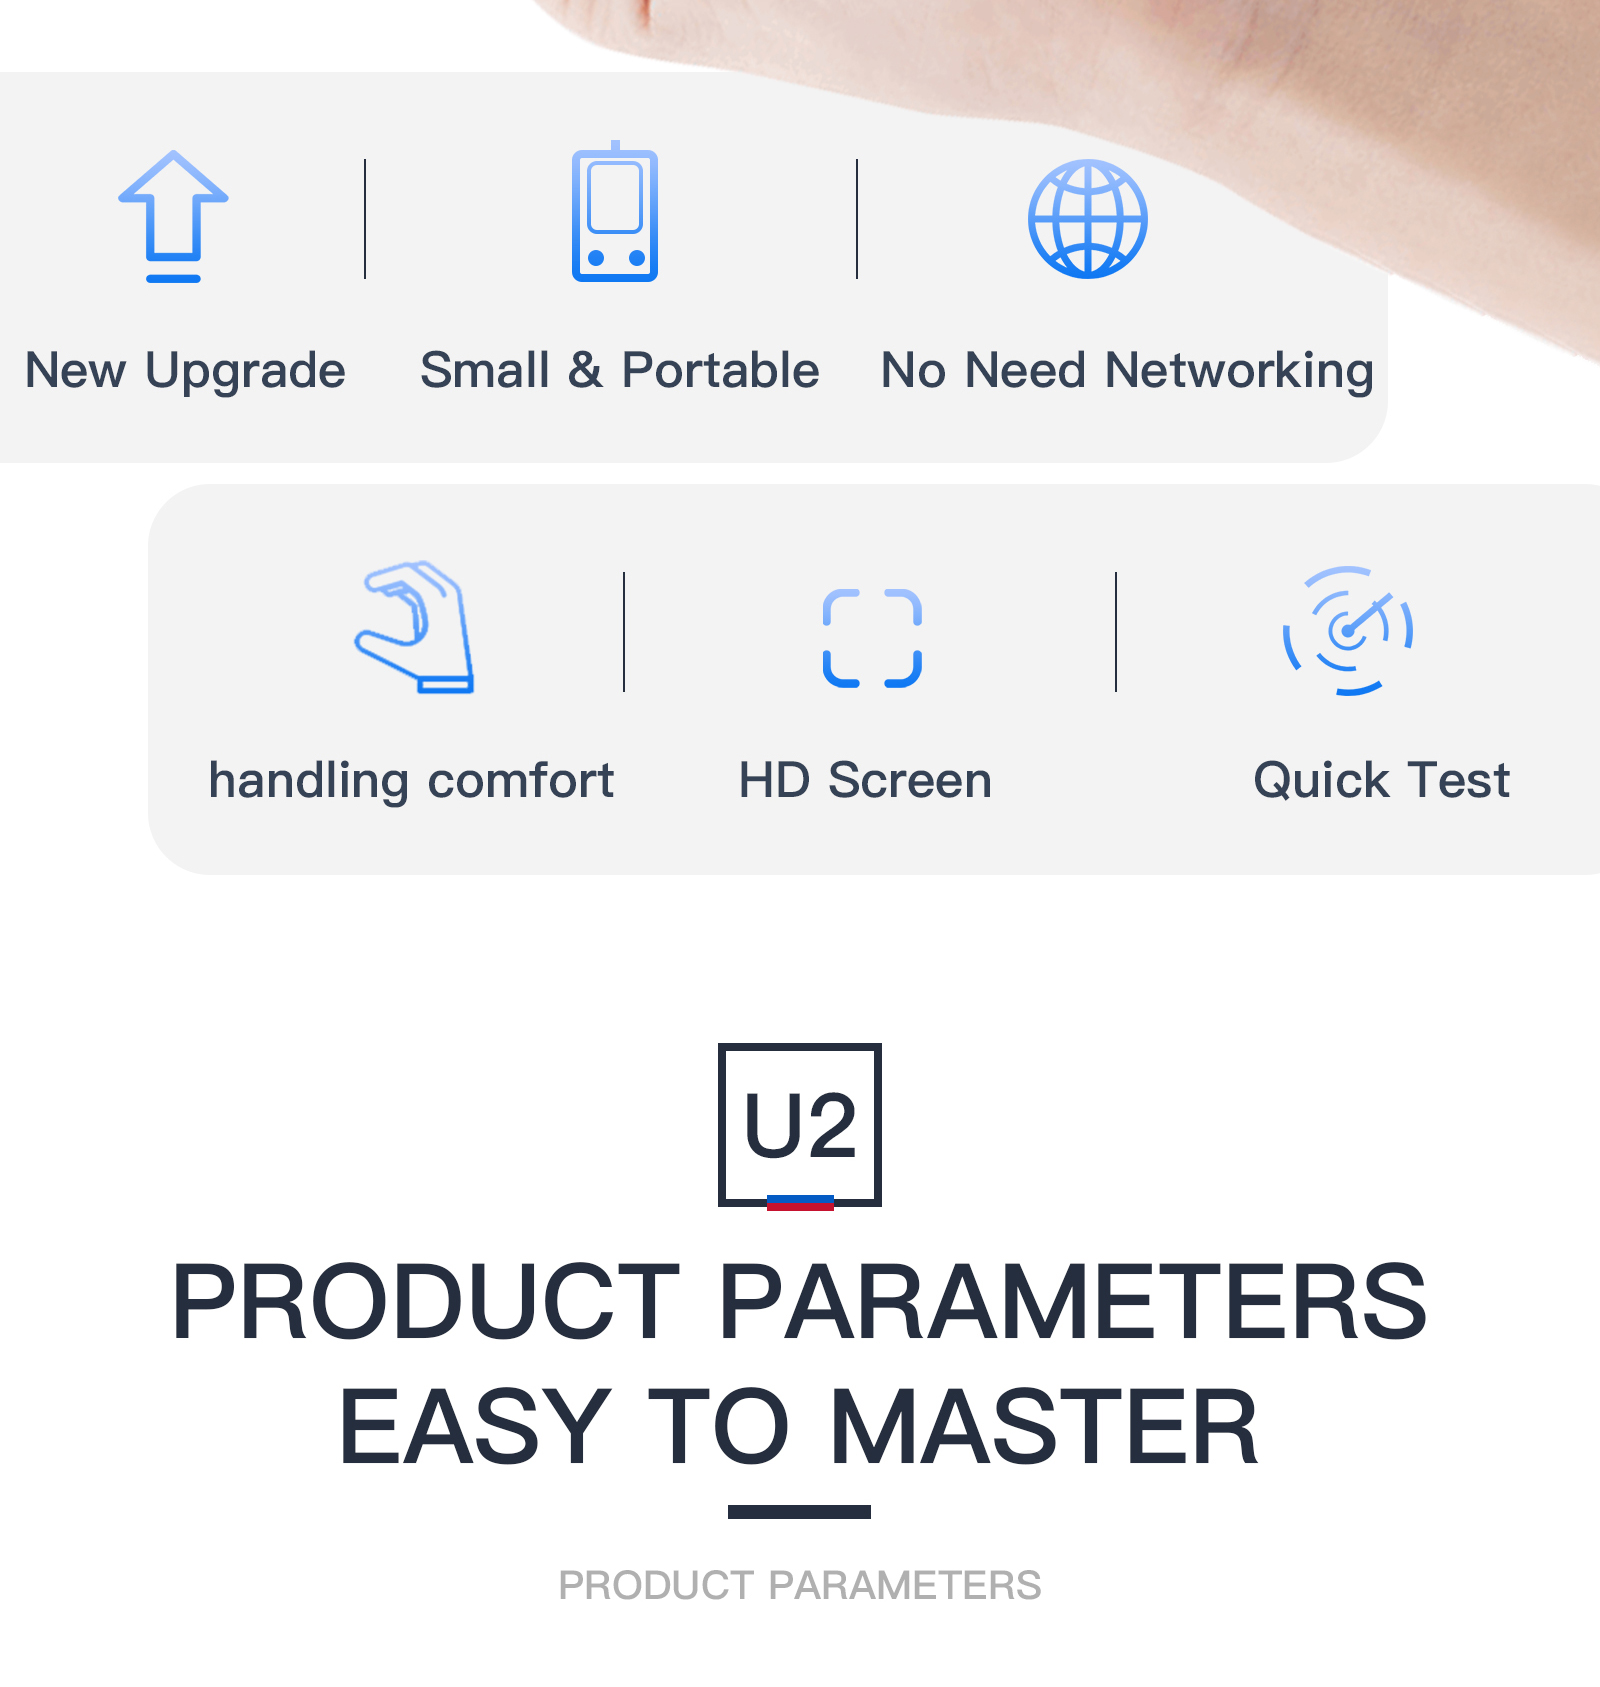 home improvement : JC U2 Chip Tristar Tester U2 Charge fault Fast Detector for iPhone 5-11Pro Max Auto-test U2 Status Serial Number Detector Reader